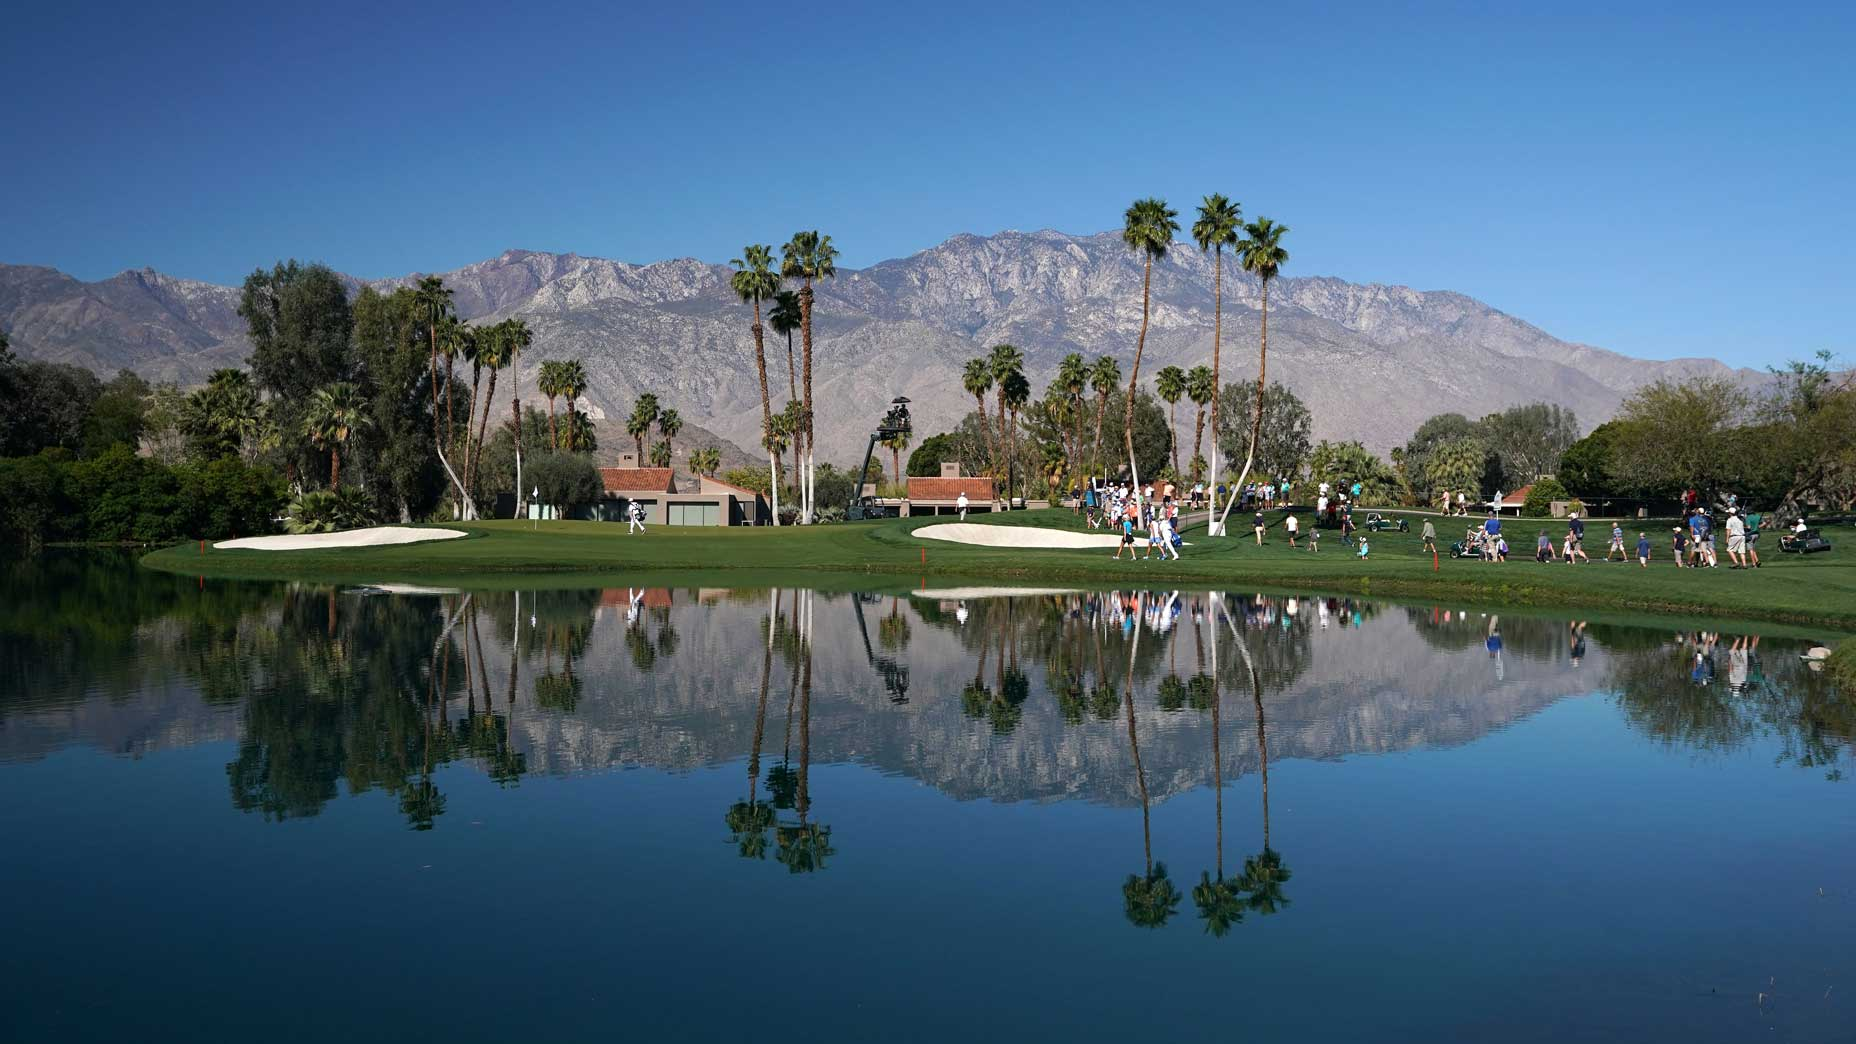 A wide view of mission hills country club's golf course